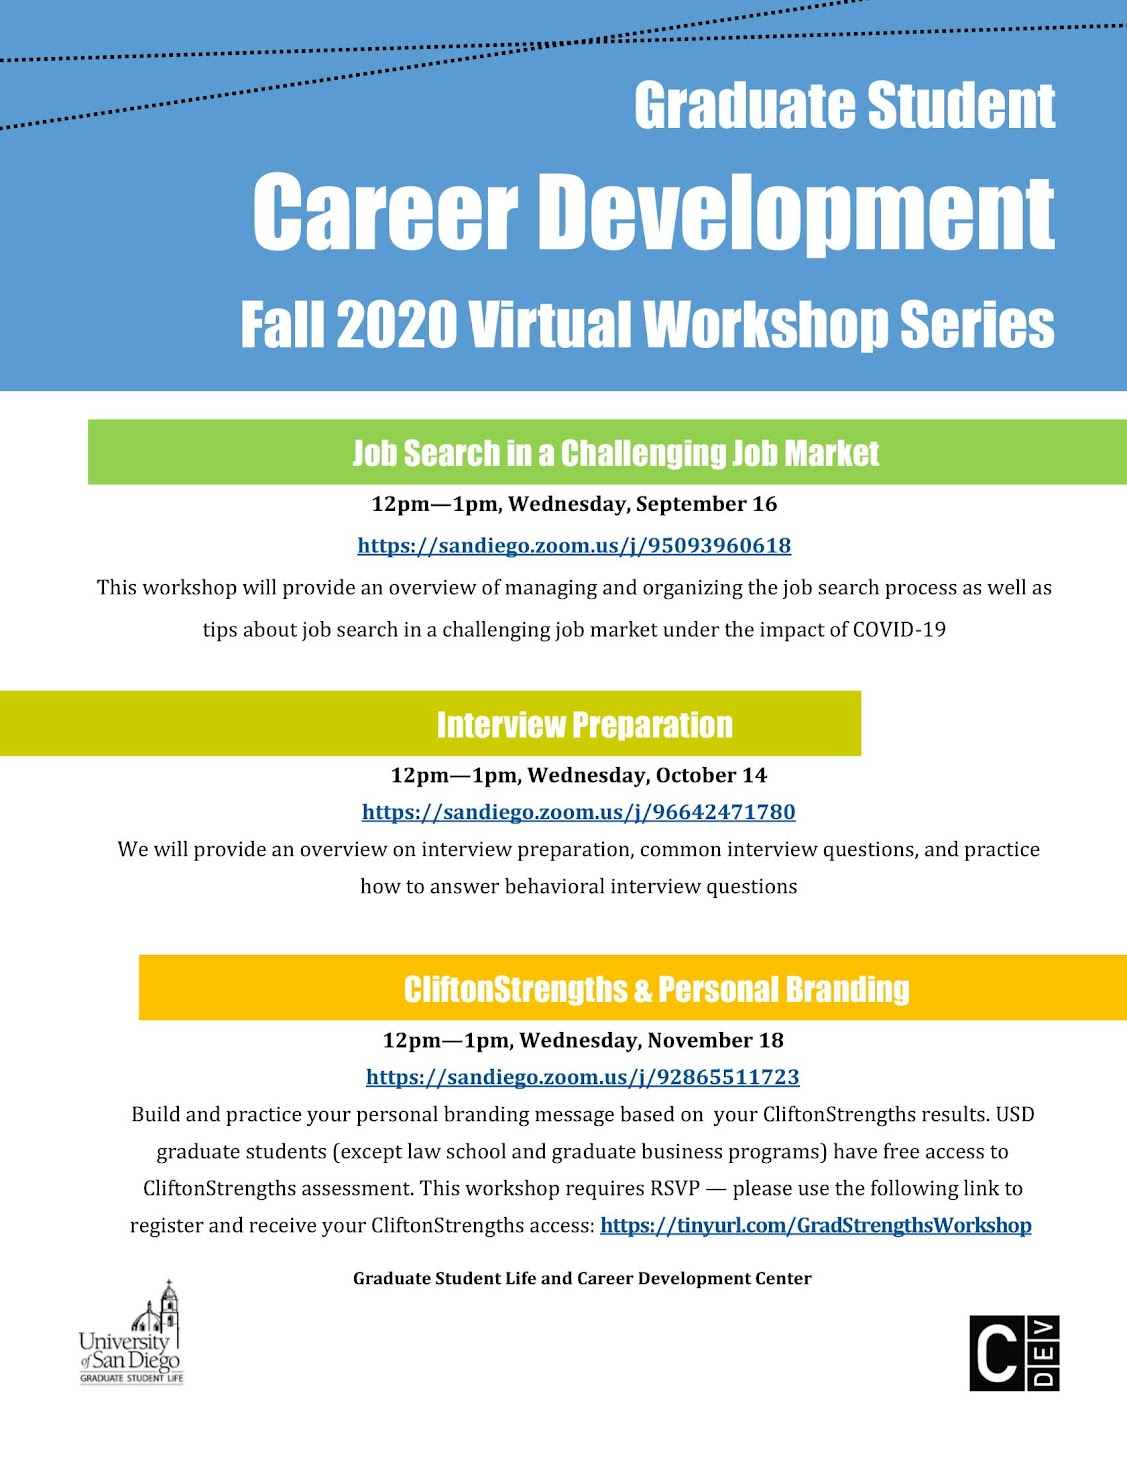 GSL & Career Development Center Graduate Workshop Series: Job Searching in a Challenging Job Market, Wednesday, September 16 at 12:00pm-1:00pm